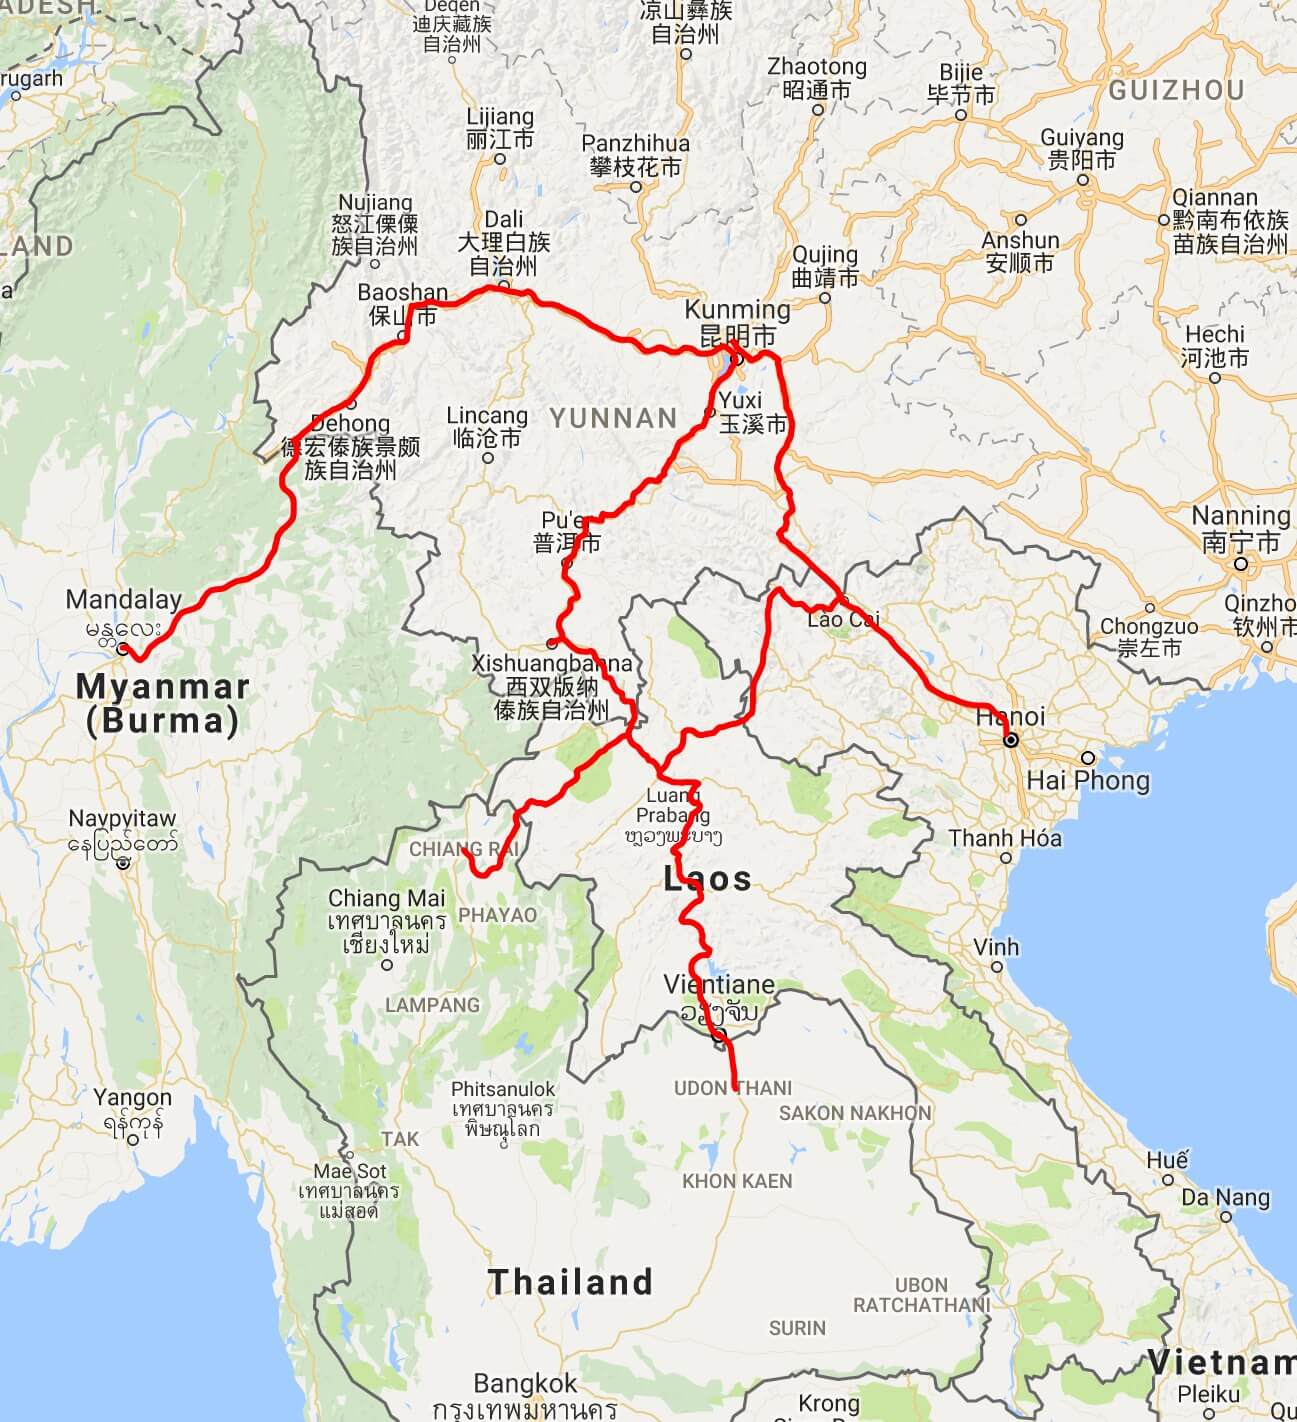 China to Thailand, Laos, Vietnam, and Myanmar route map